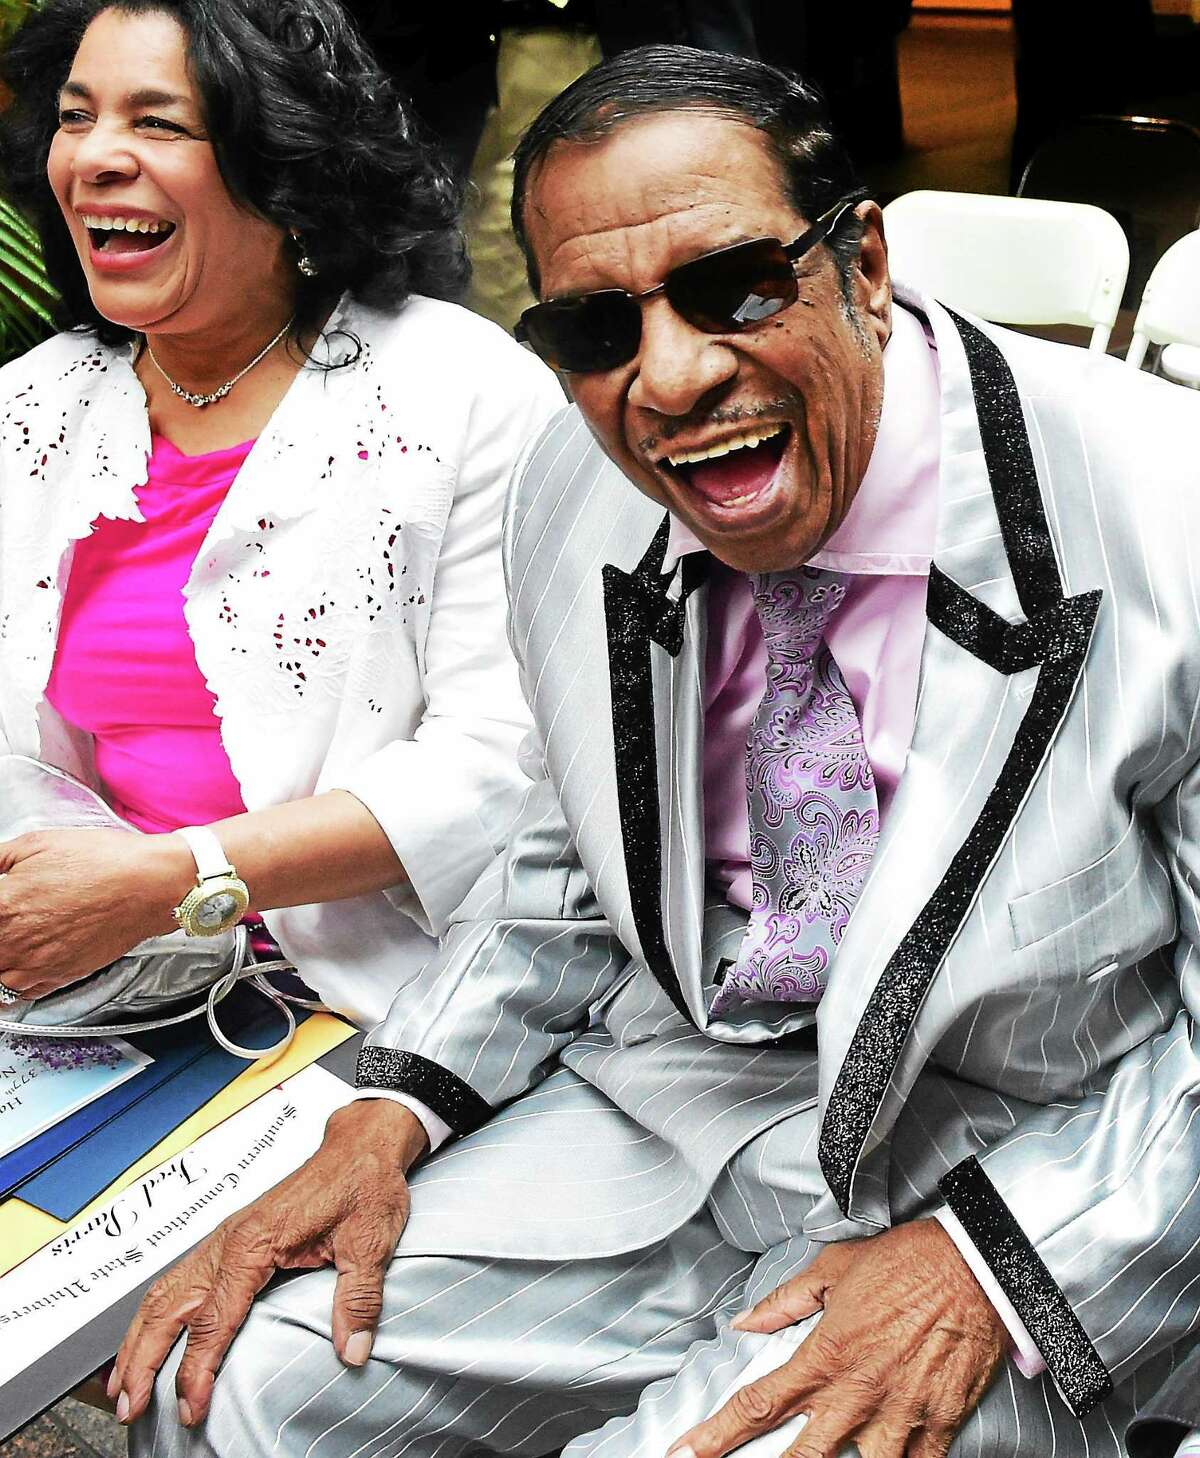 Fred Parris of the Five Satins, right, and his wife, Emma Parris, laugh with well-wishers after tribute to him and the Five Satins at a City Hall ceremony Thursday to commemorate the city's 377th birthday.